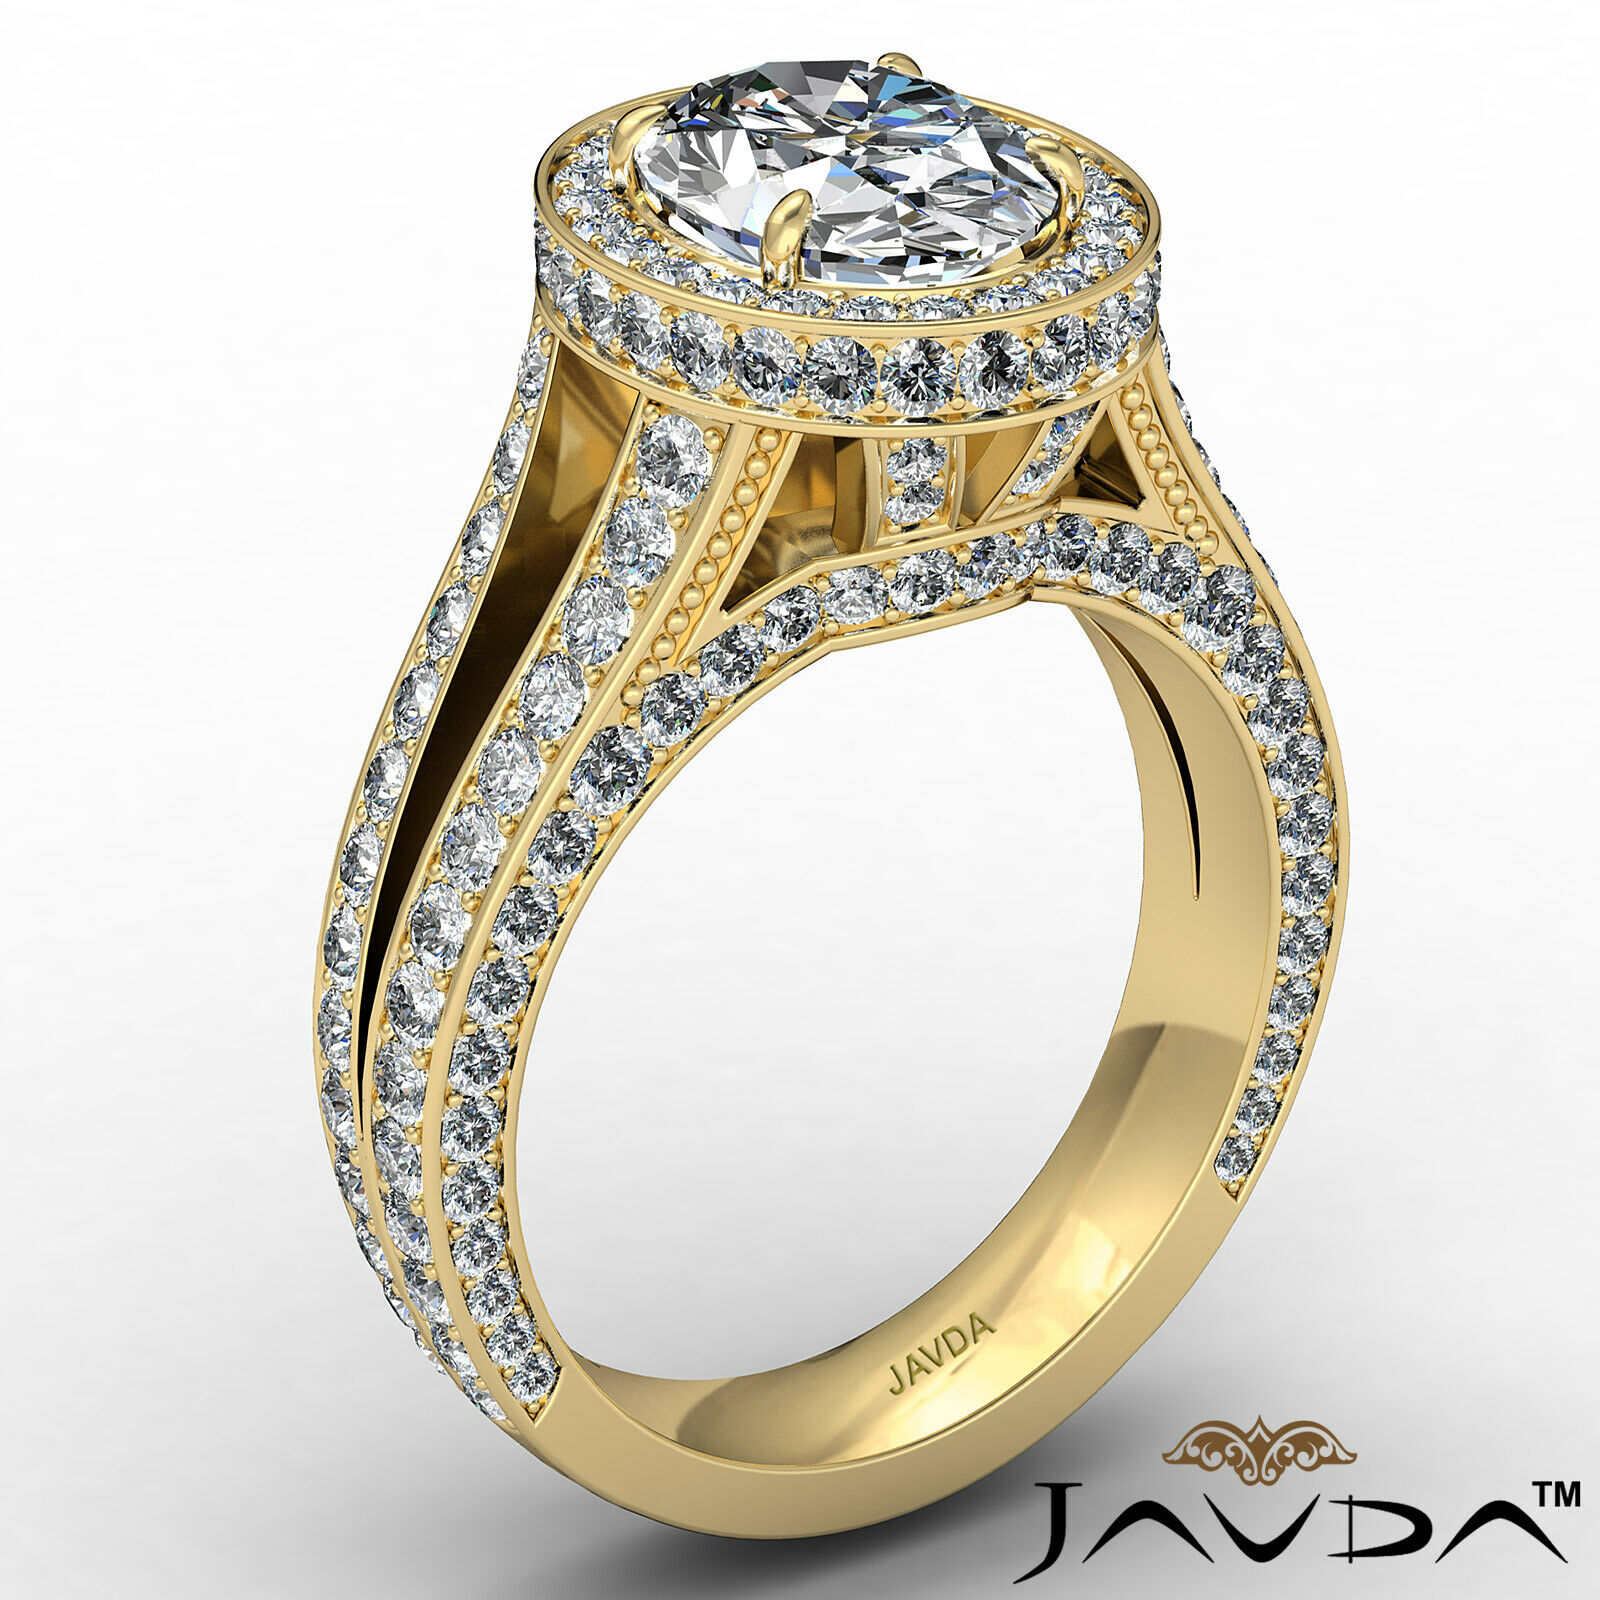 Halo Oval Diamond Engagement Ring GIA Certified F Color & SI1 clarity 2.31 ctw 4